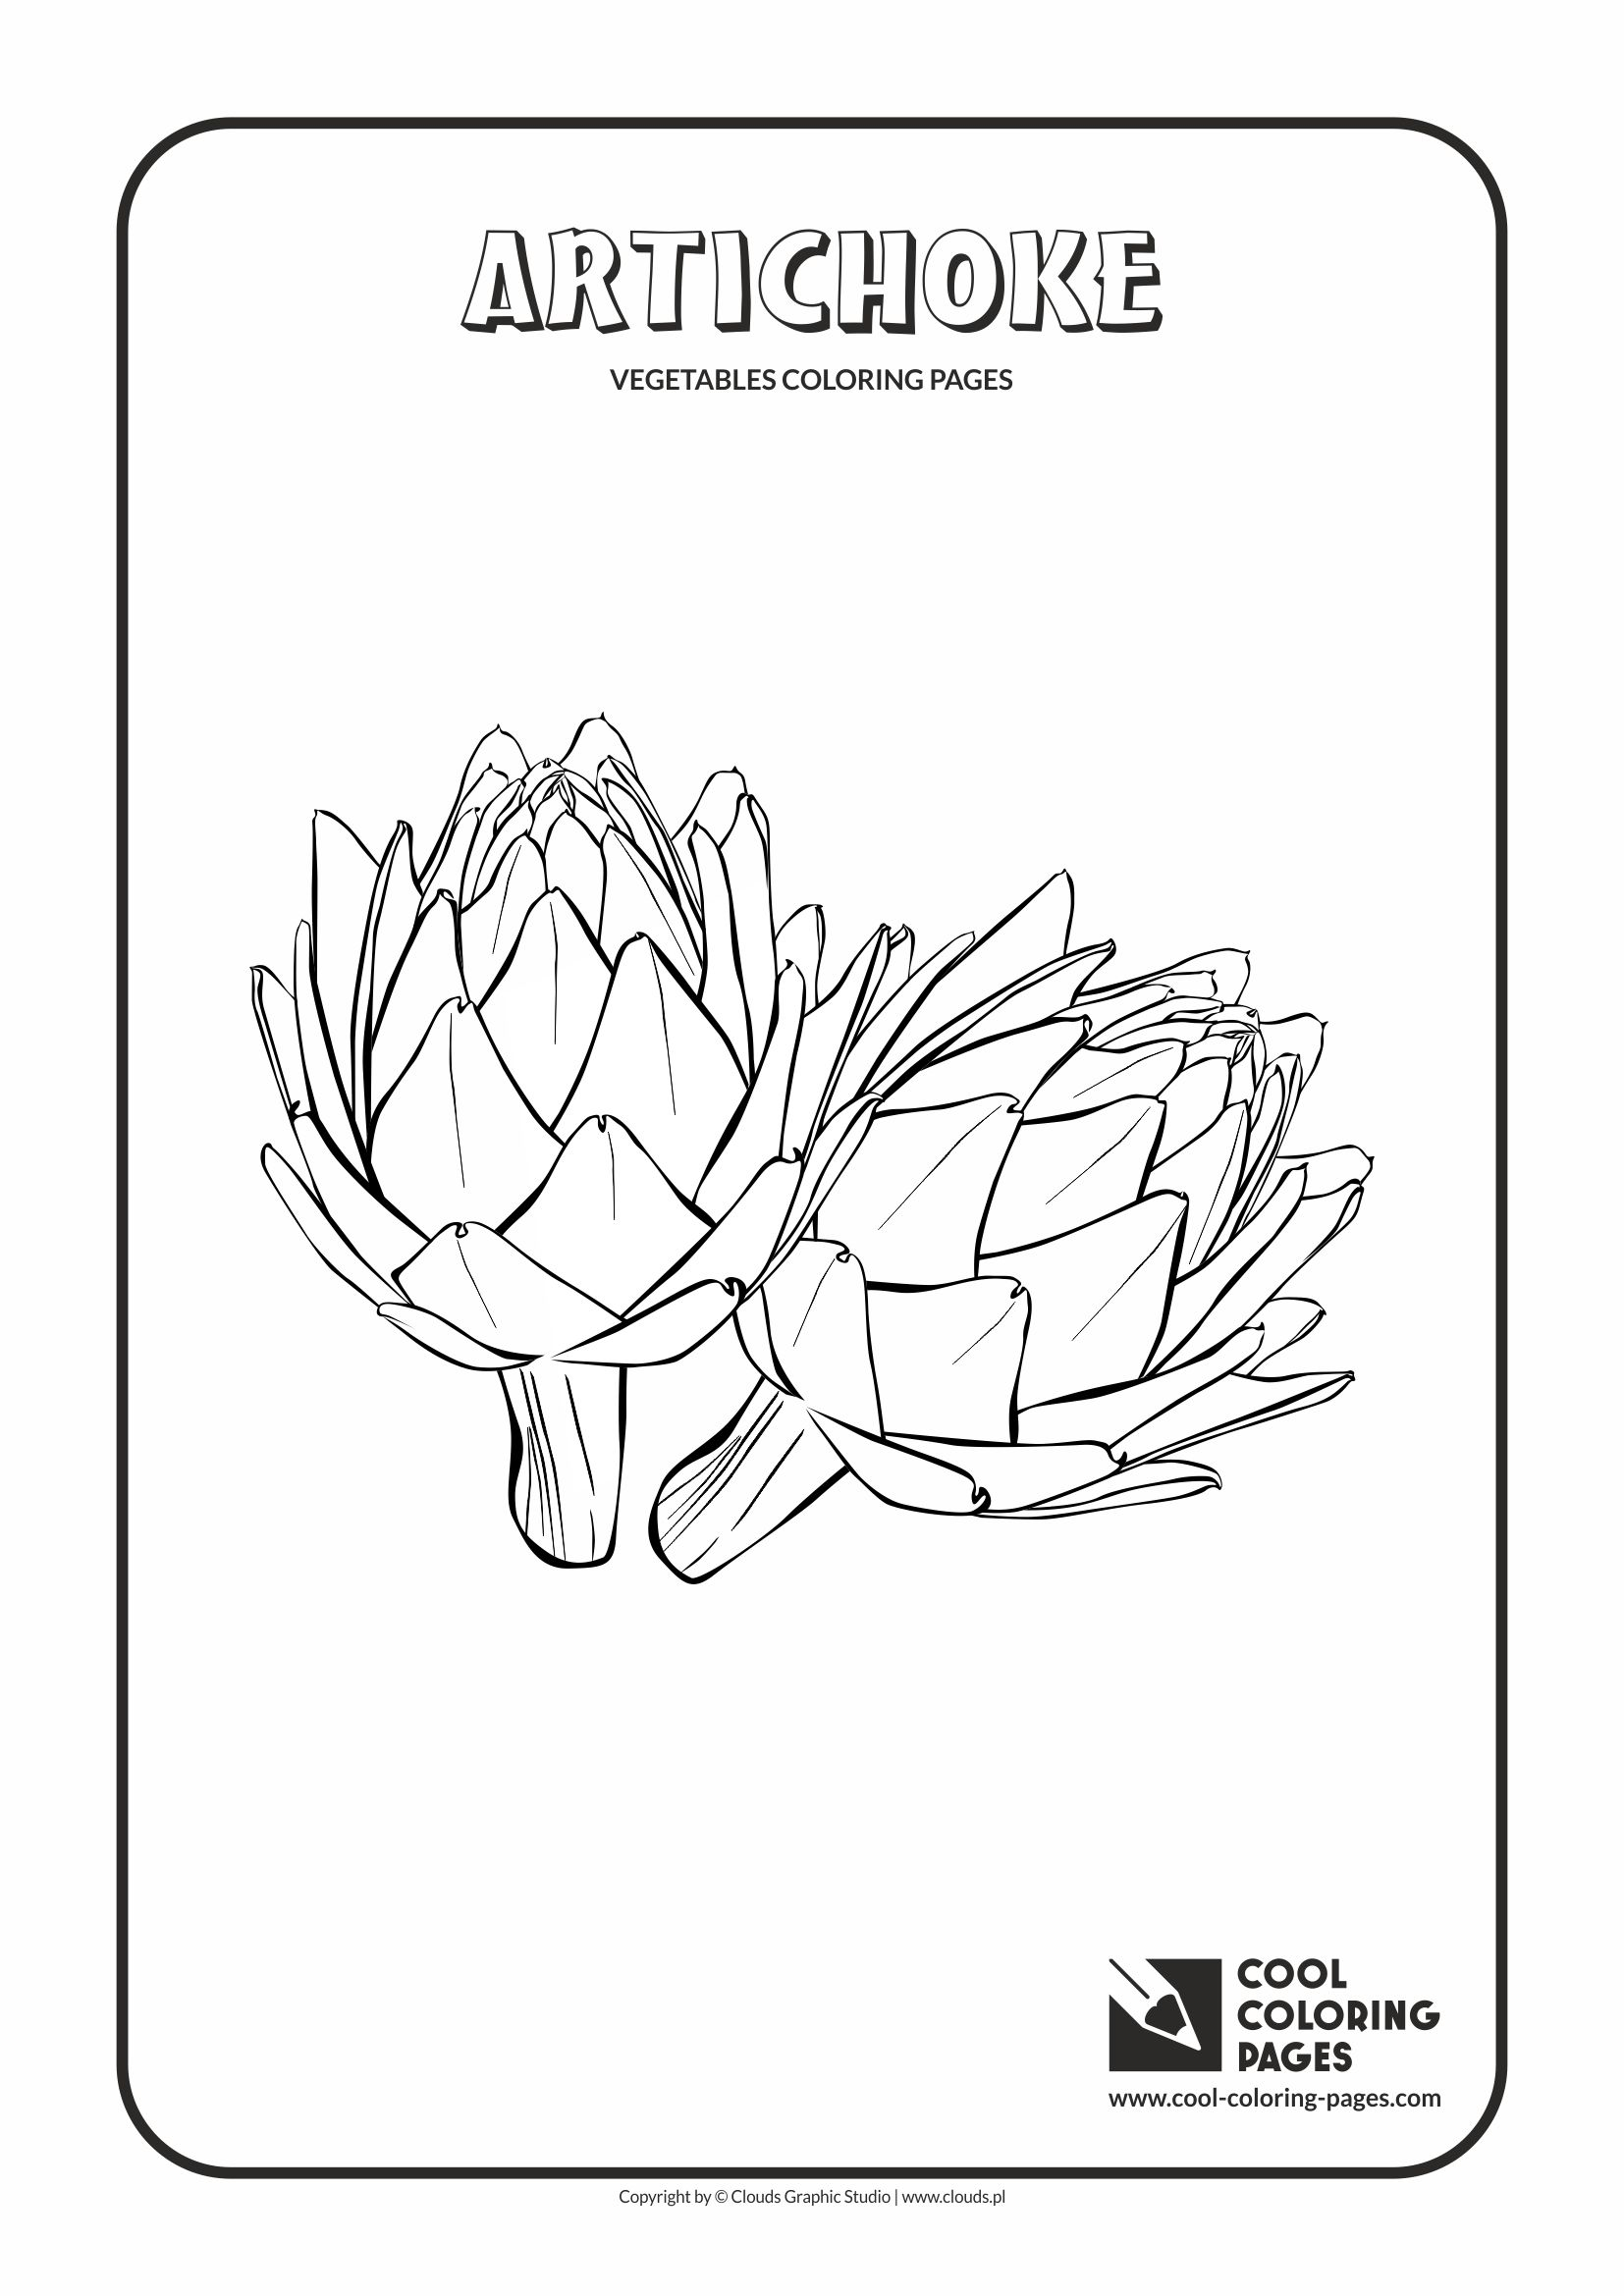 artichoke coloring page cool coloring pages